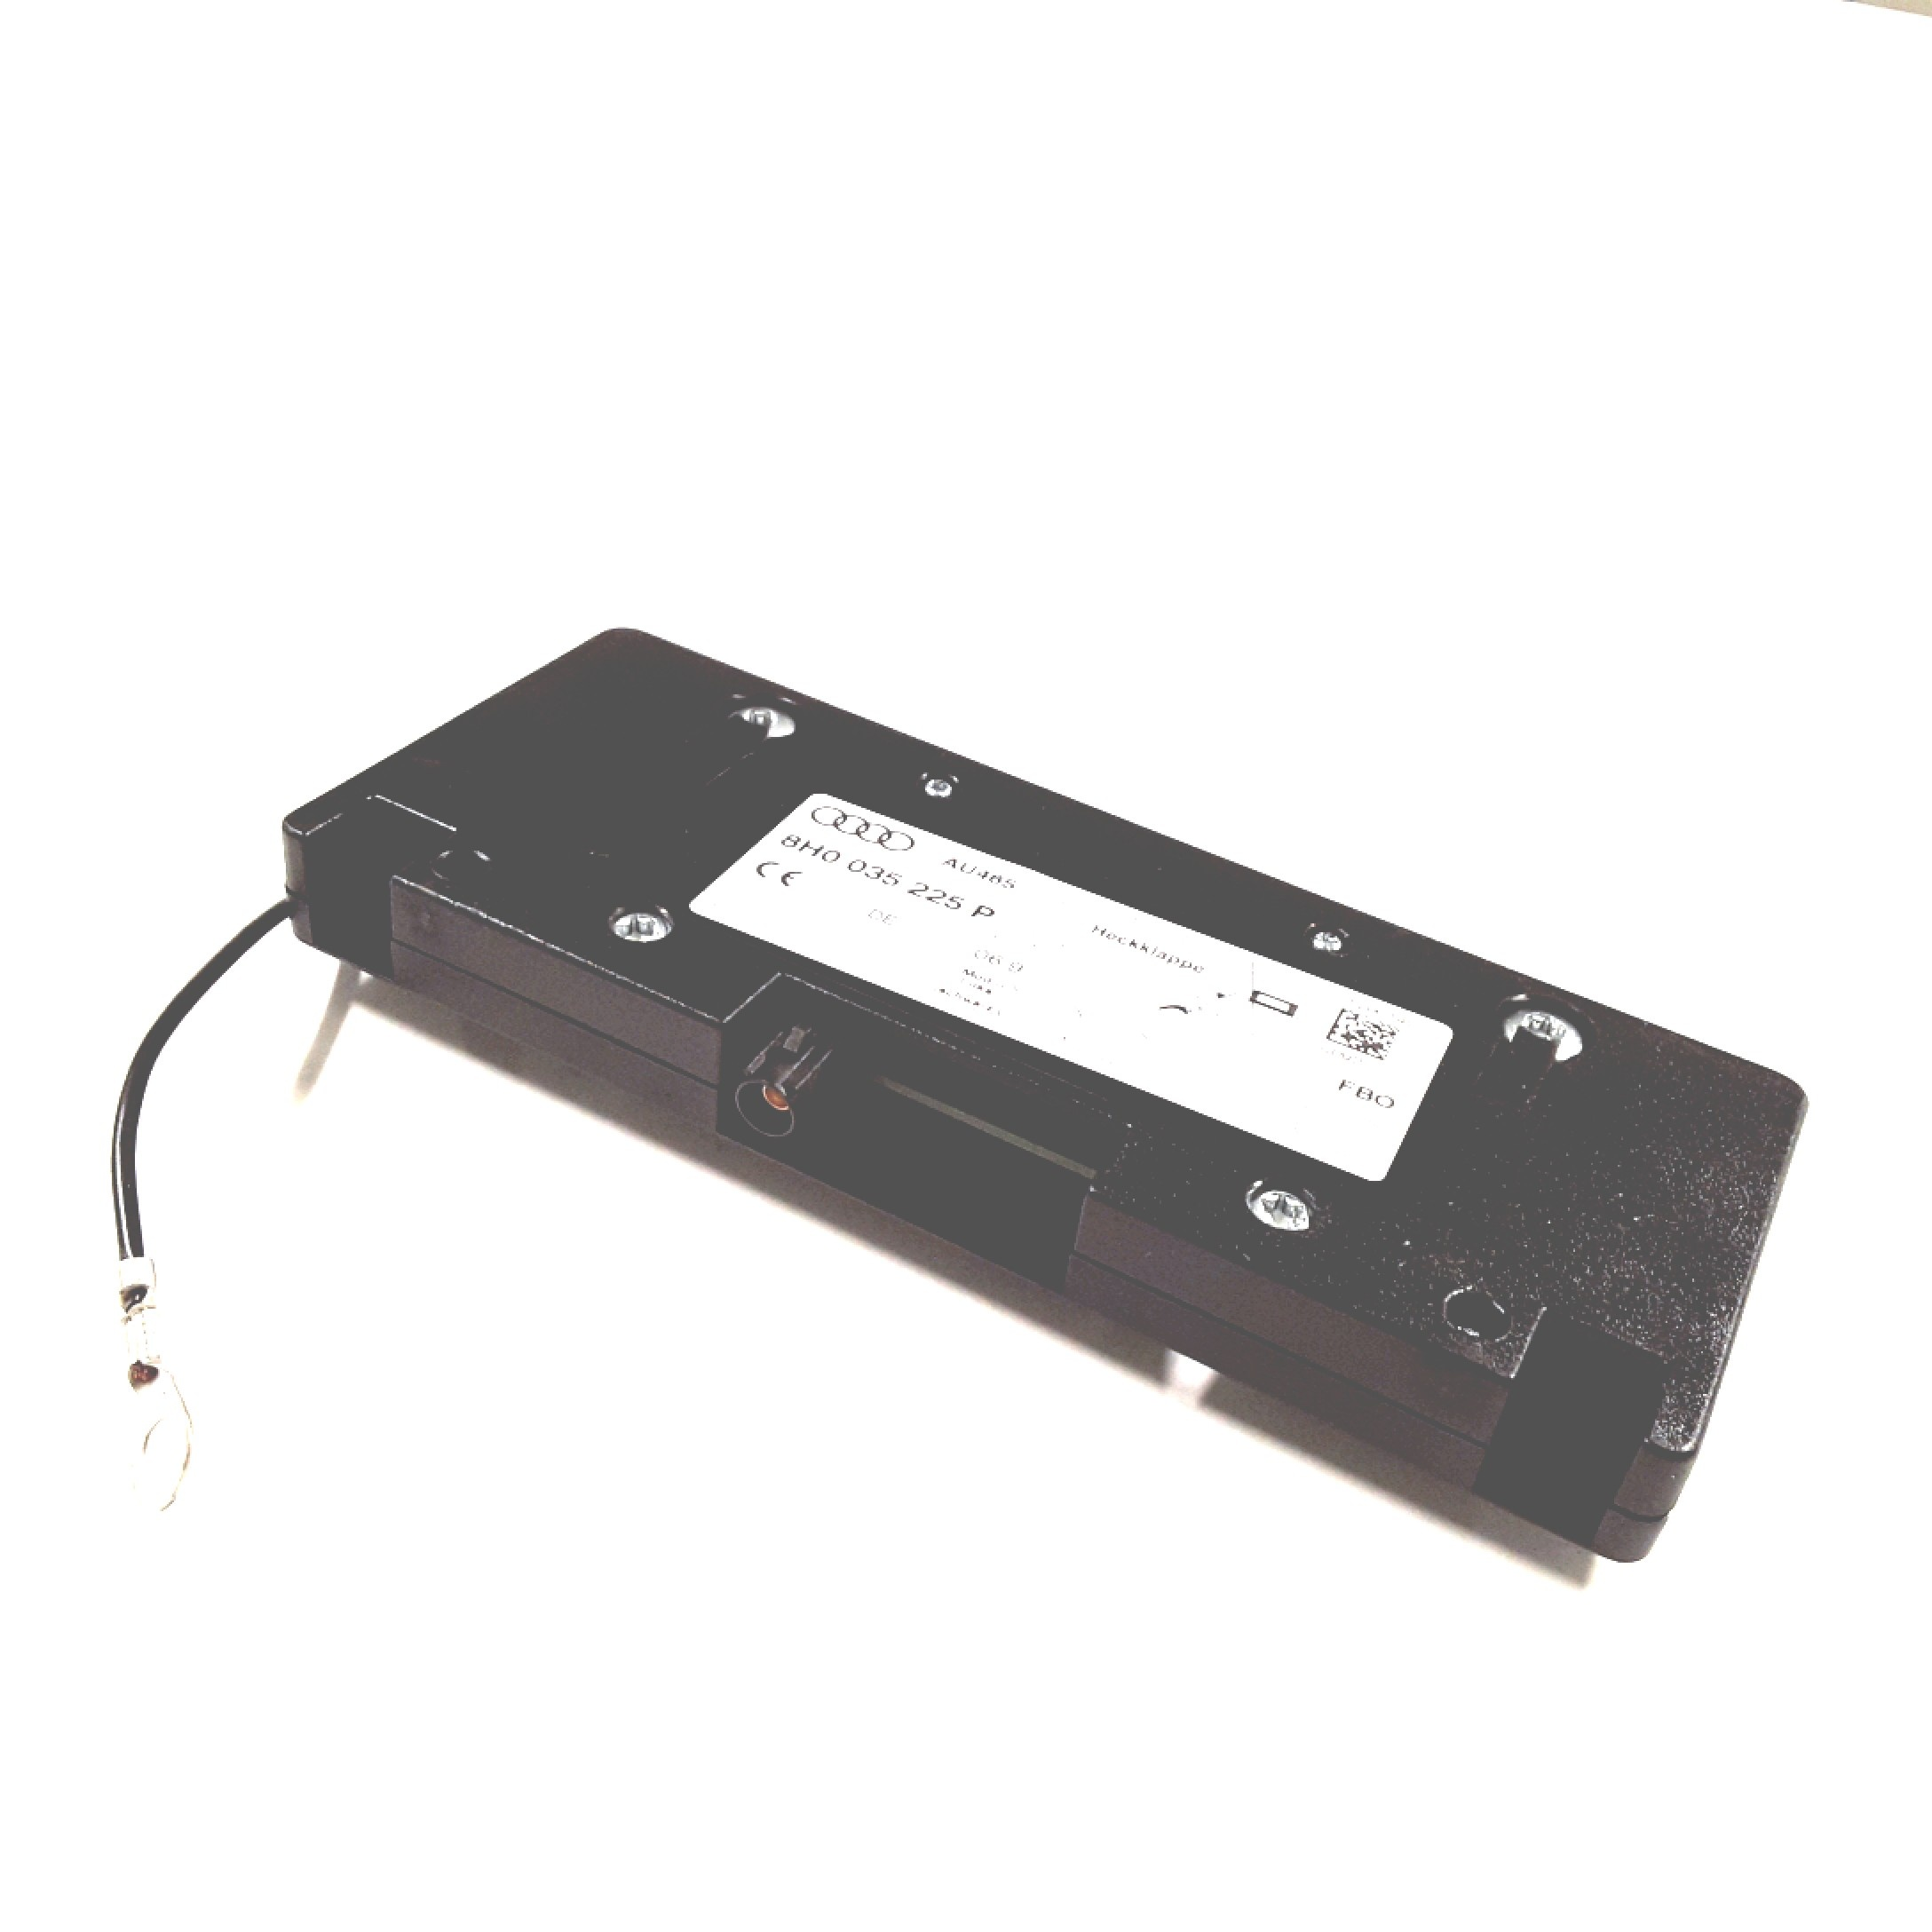 2004 Audi A4 Cabriolet For Vehicles With Digital Antenna